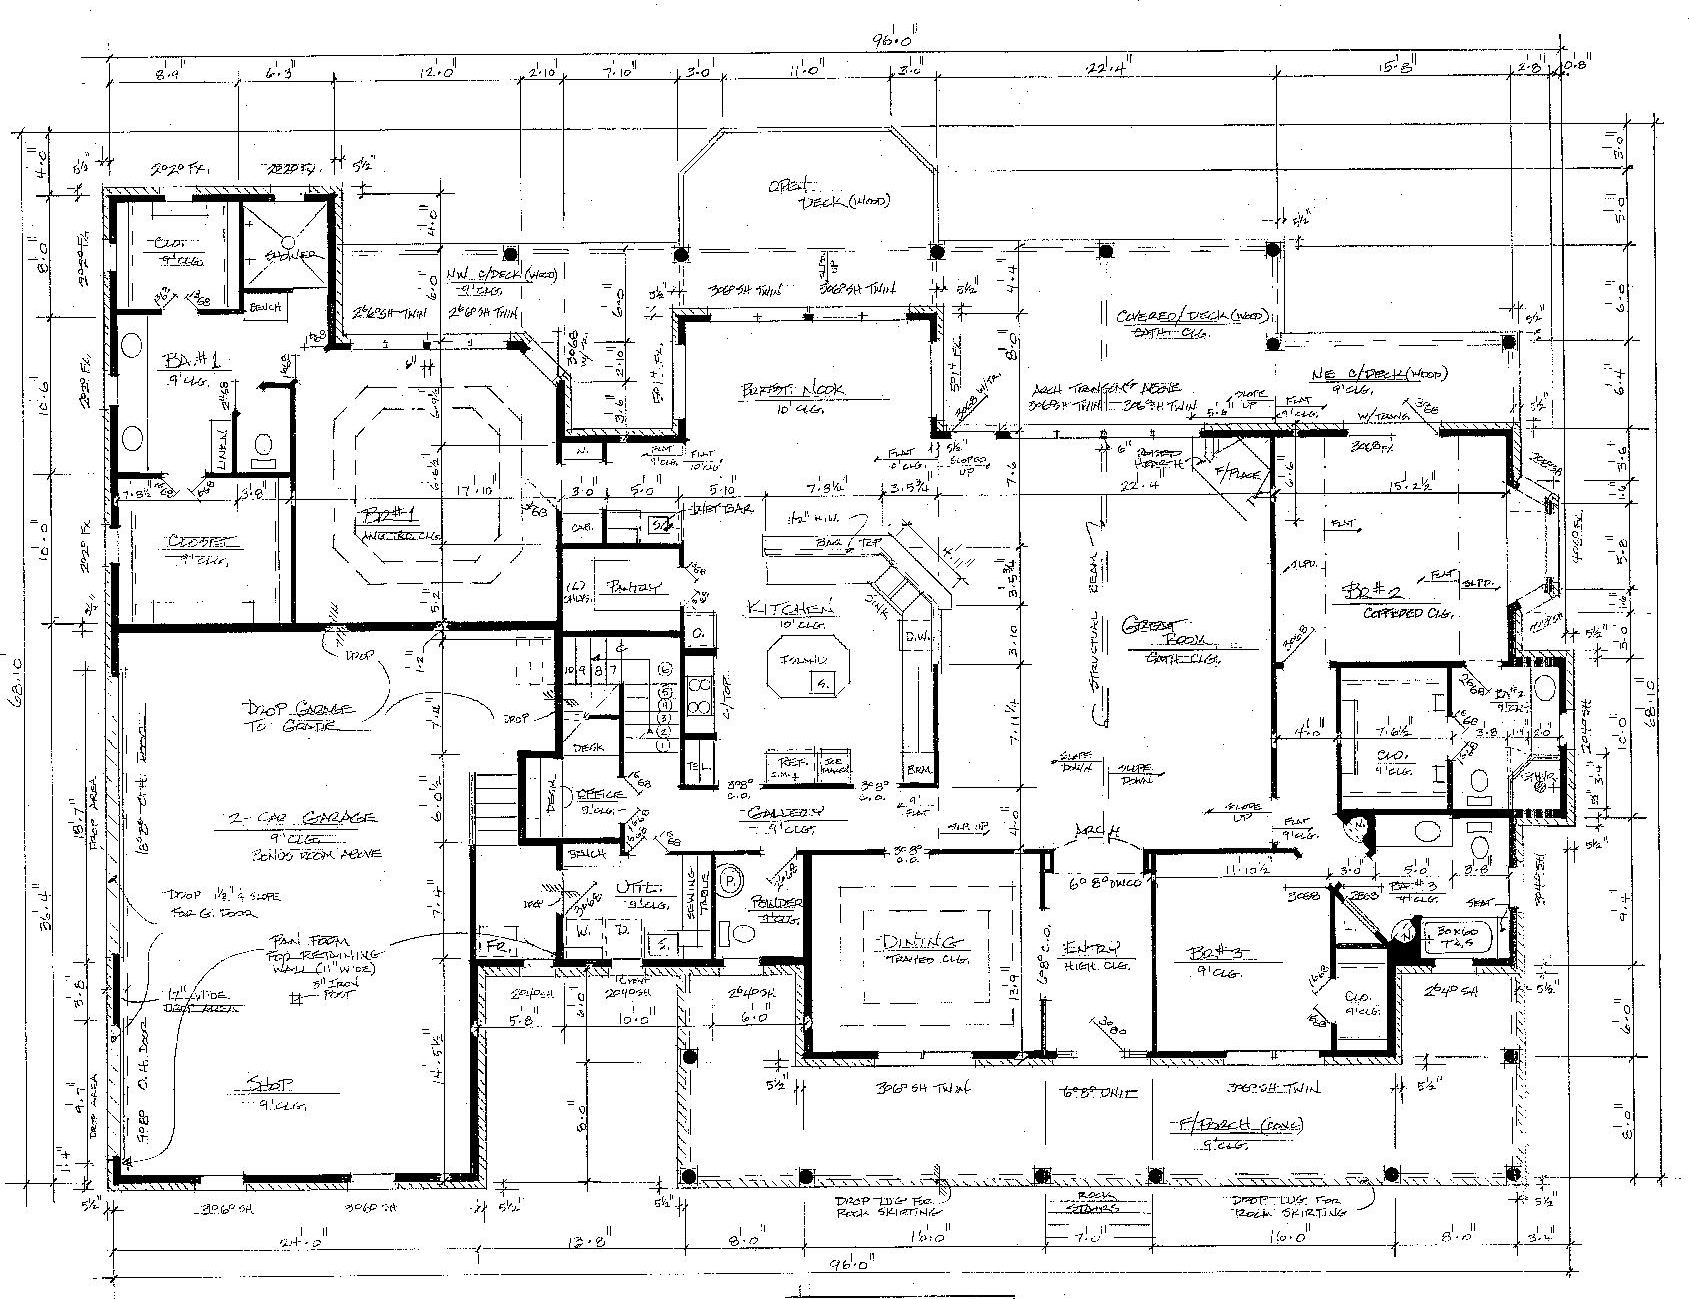 Free building drawing at getdrawings free for personal use 1689x1299 house plan drawing house plans simple house floor plans malvernweather Images